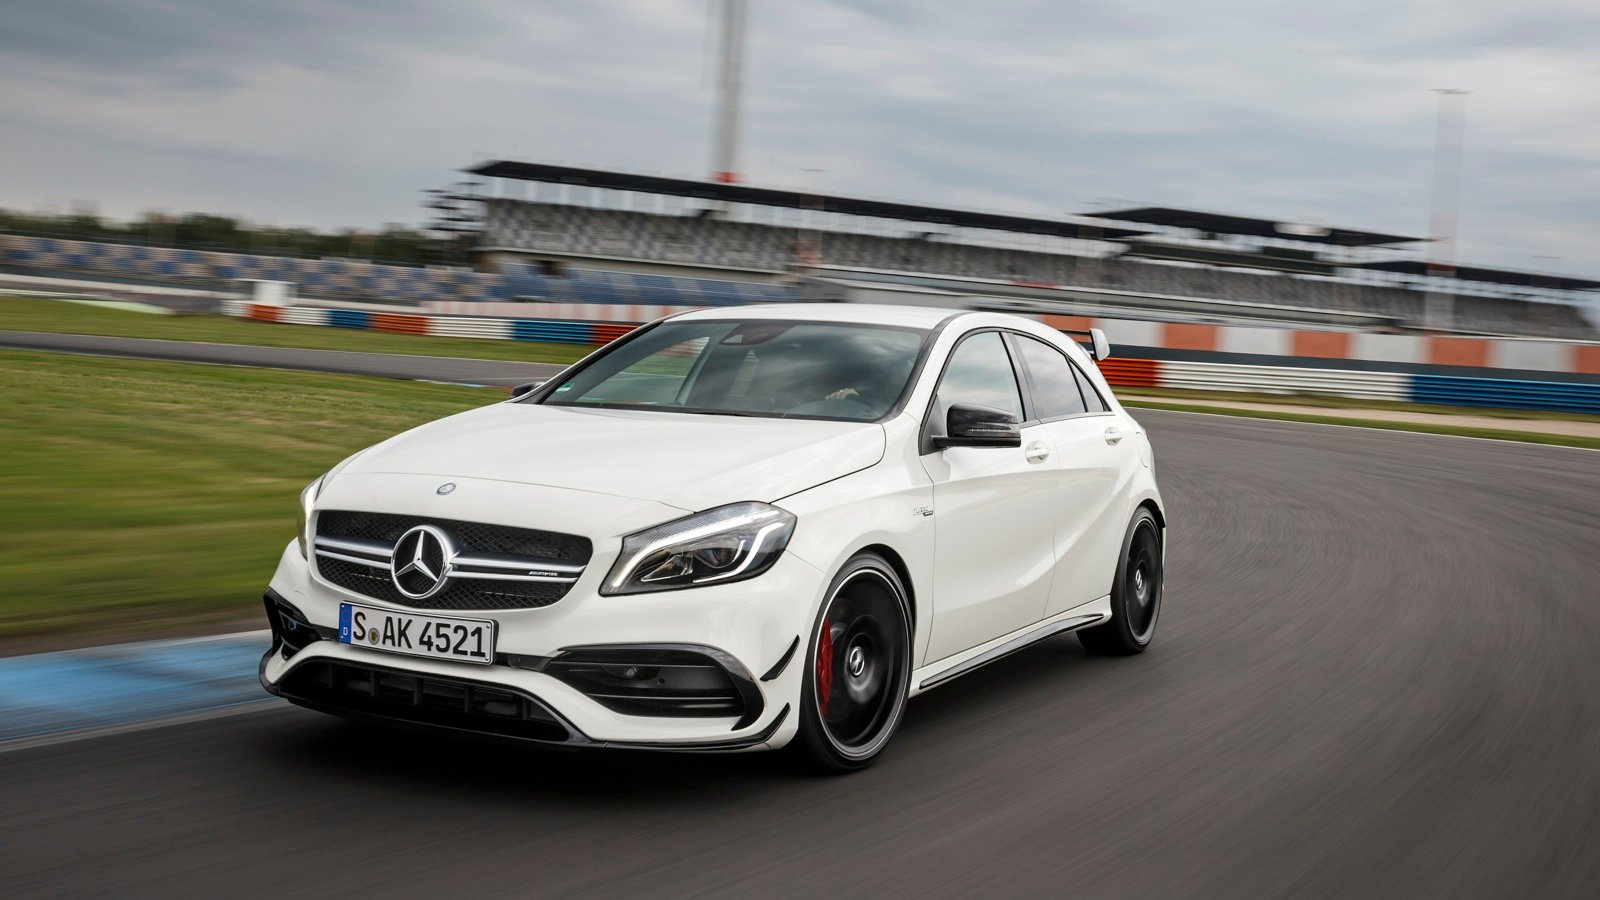 2016 Mercedes Amg A45 4matic Review Track Test Photos Caradvice